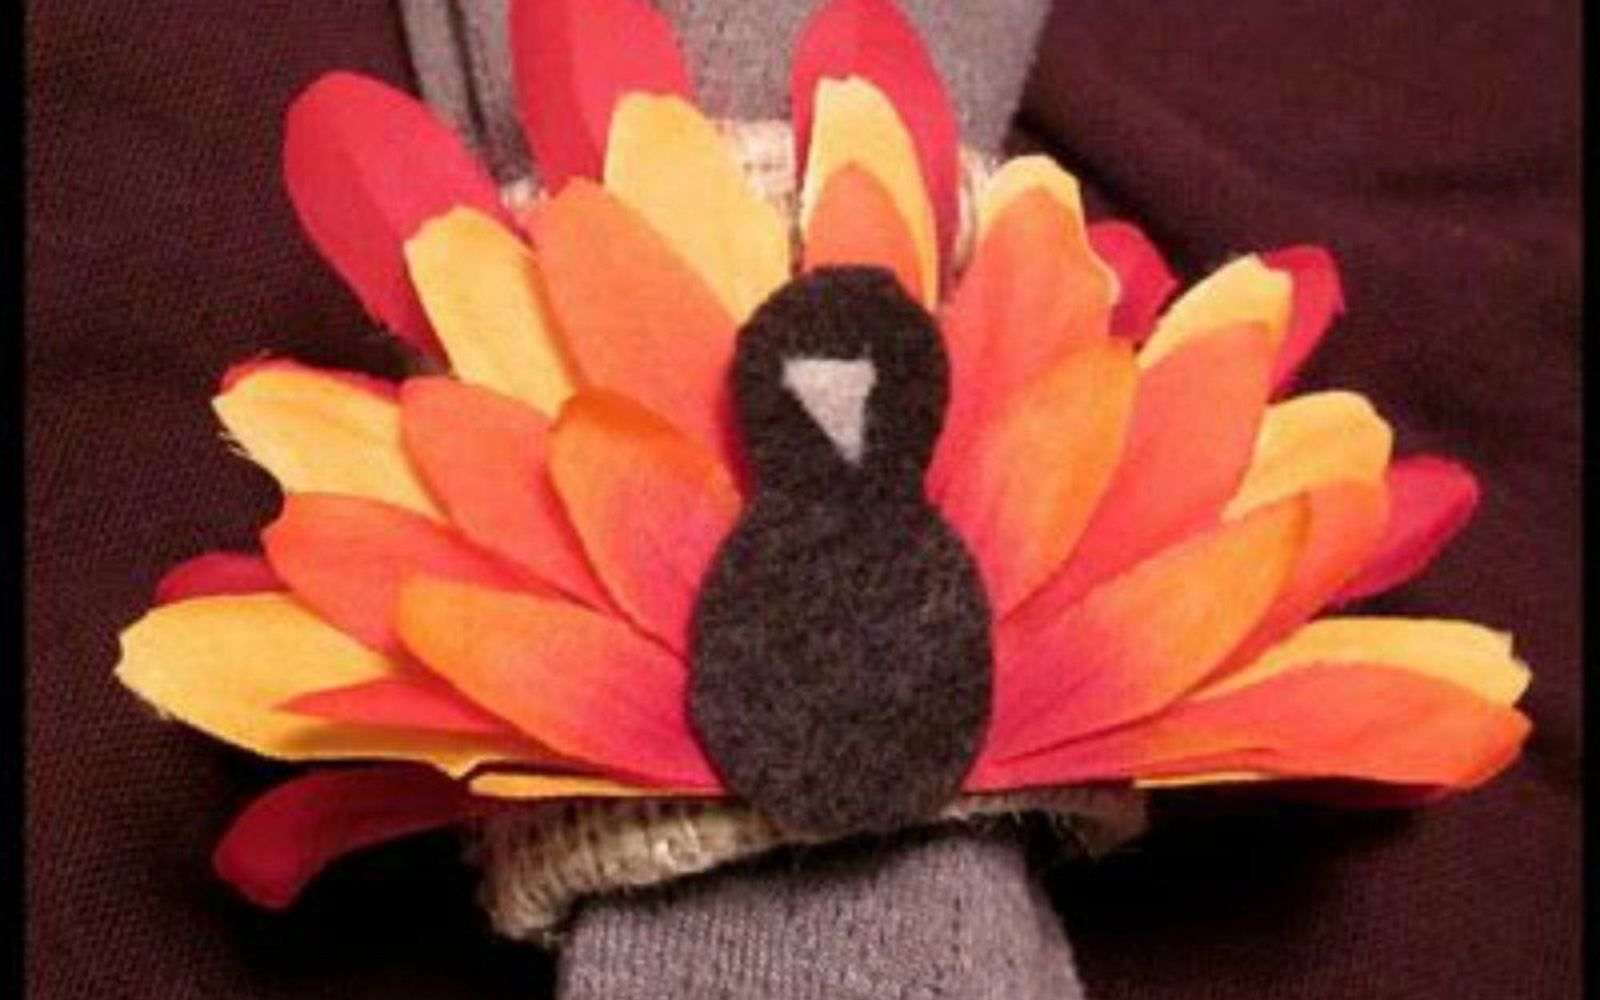 s why everyone is buying artificial flowers for the holidays, gardening, They can turn into turkey napkin holders